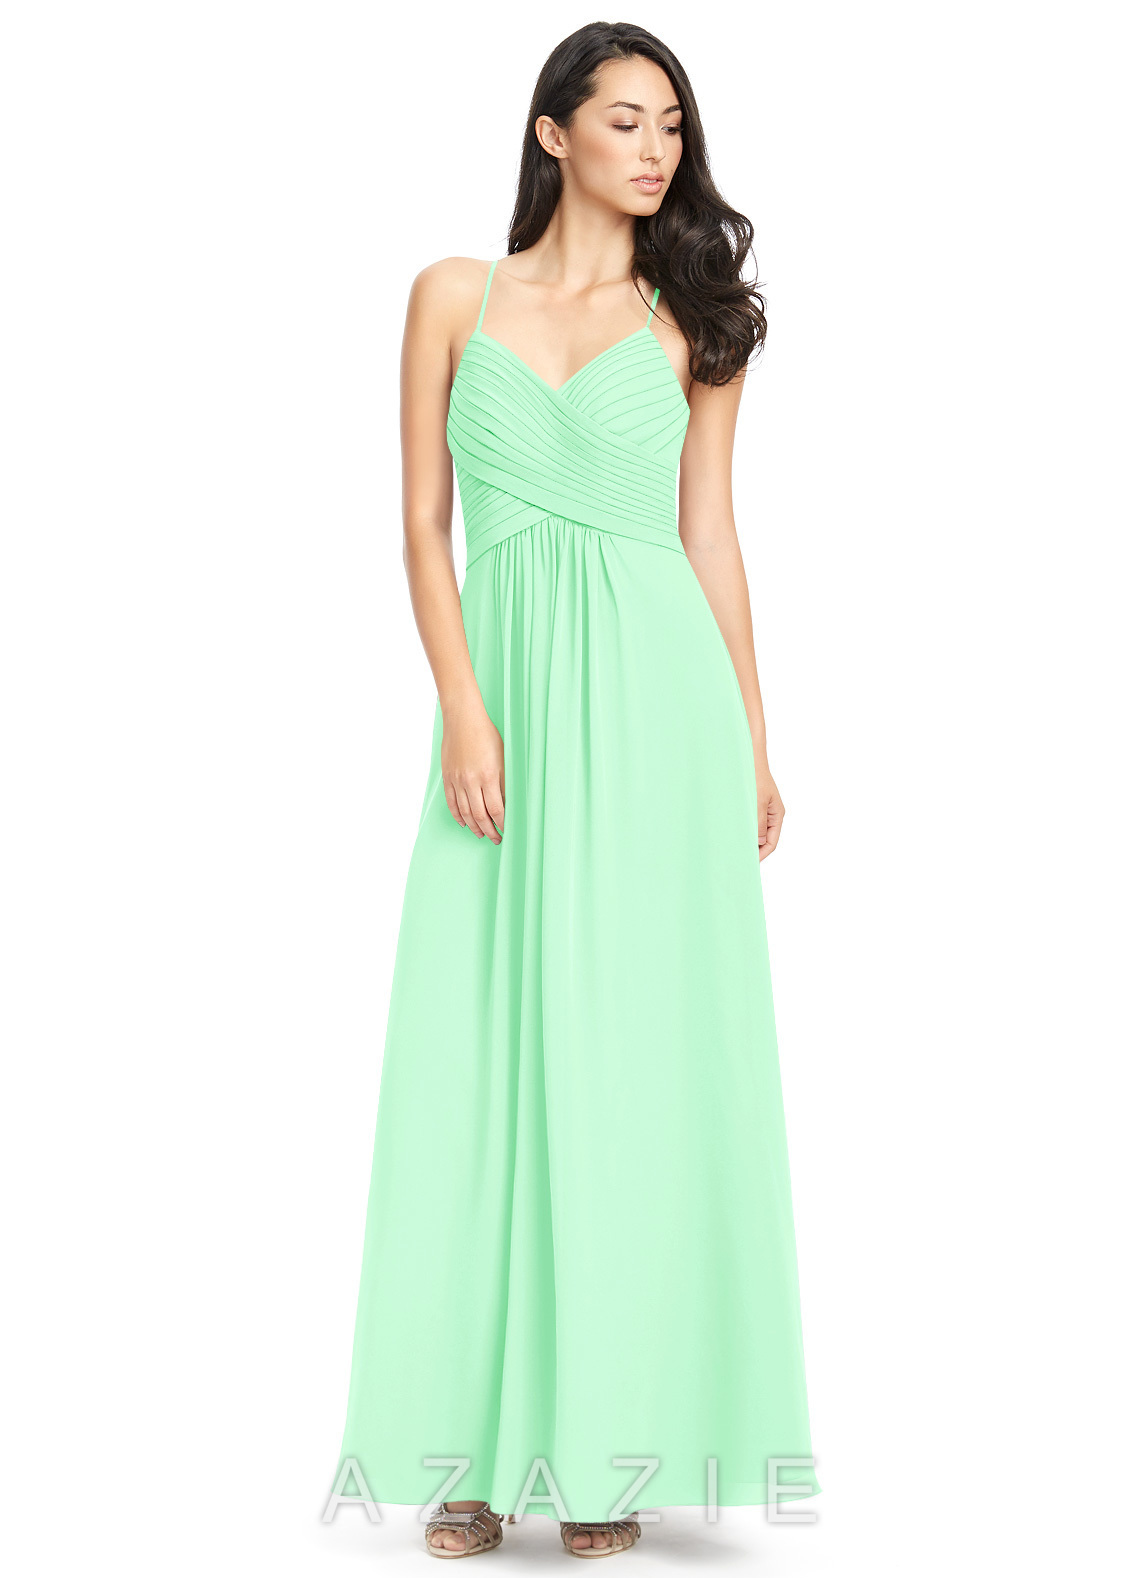 Azazie Haleigh Clearance Bridesmaid Dress | Azazie